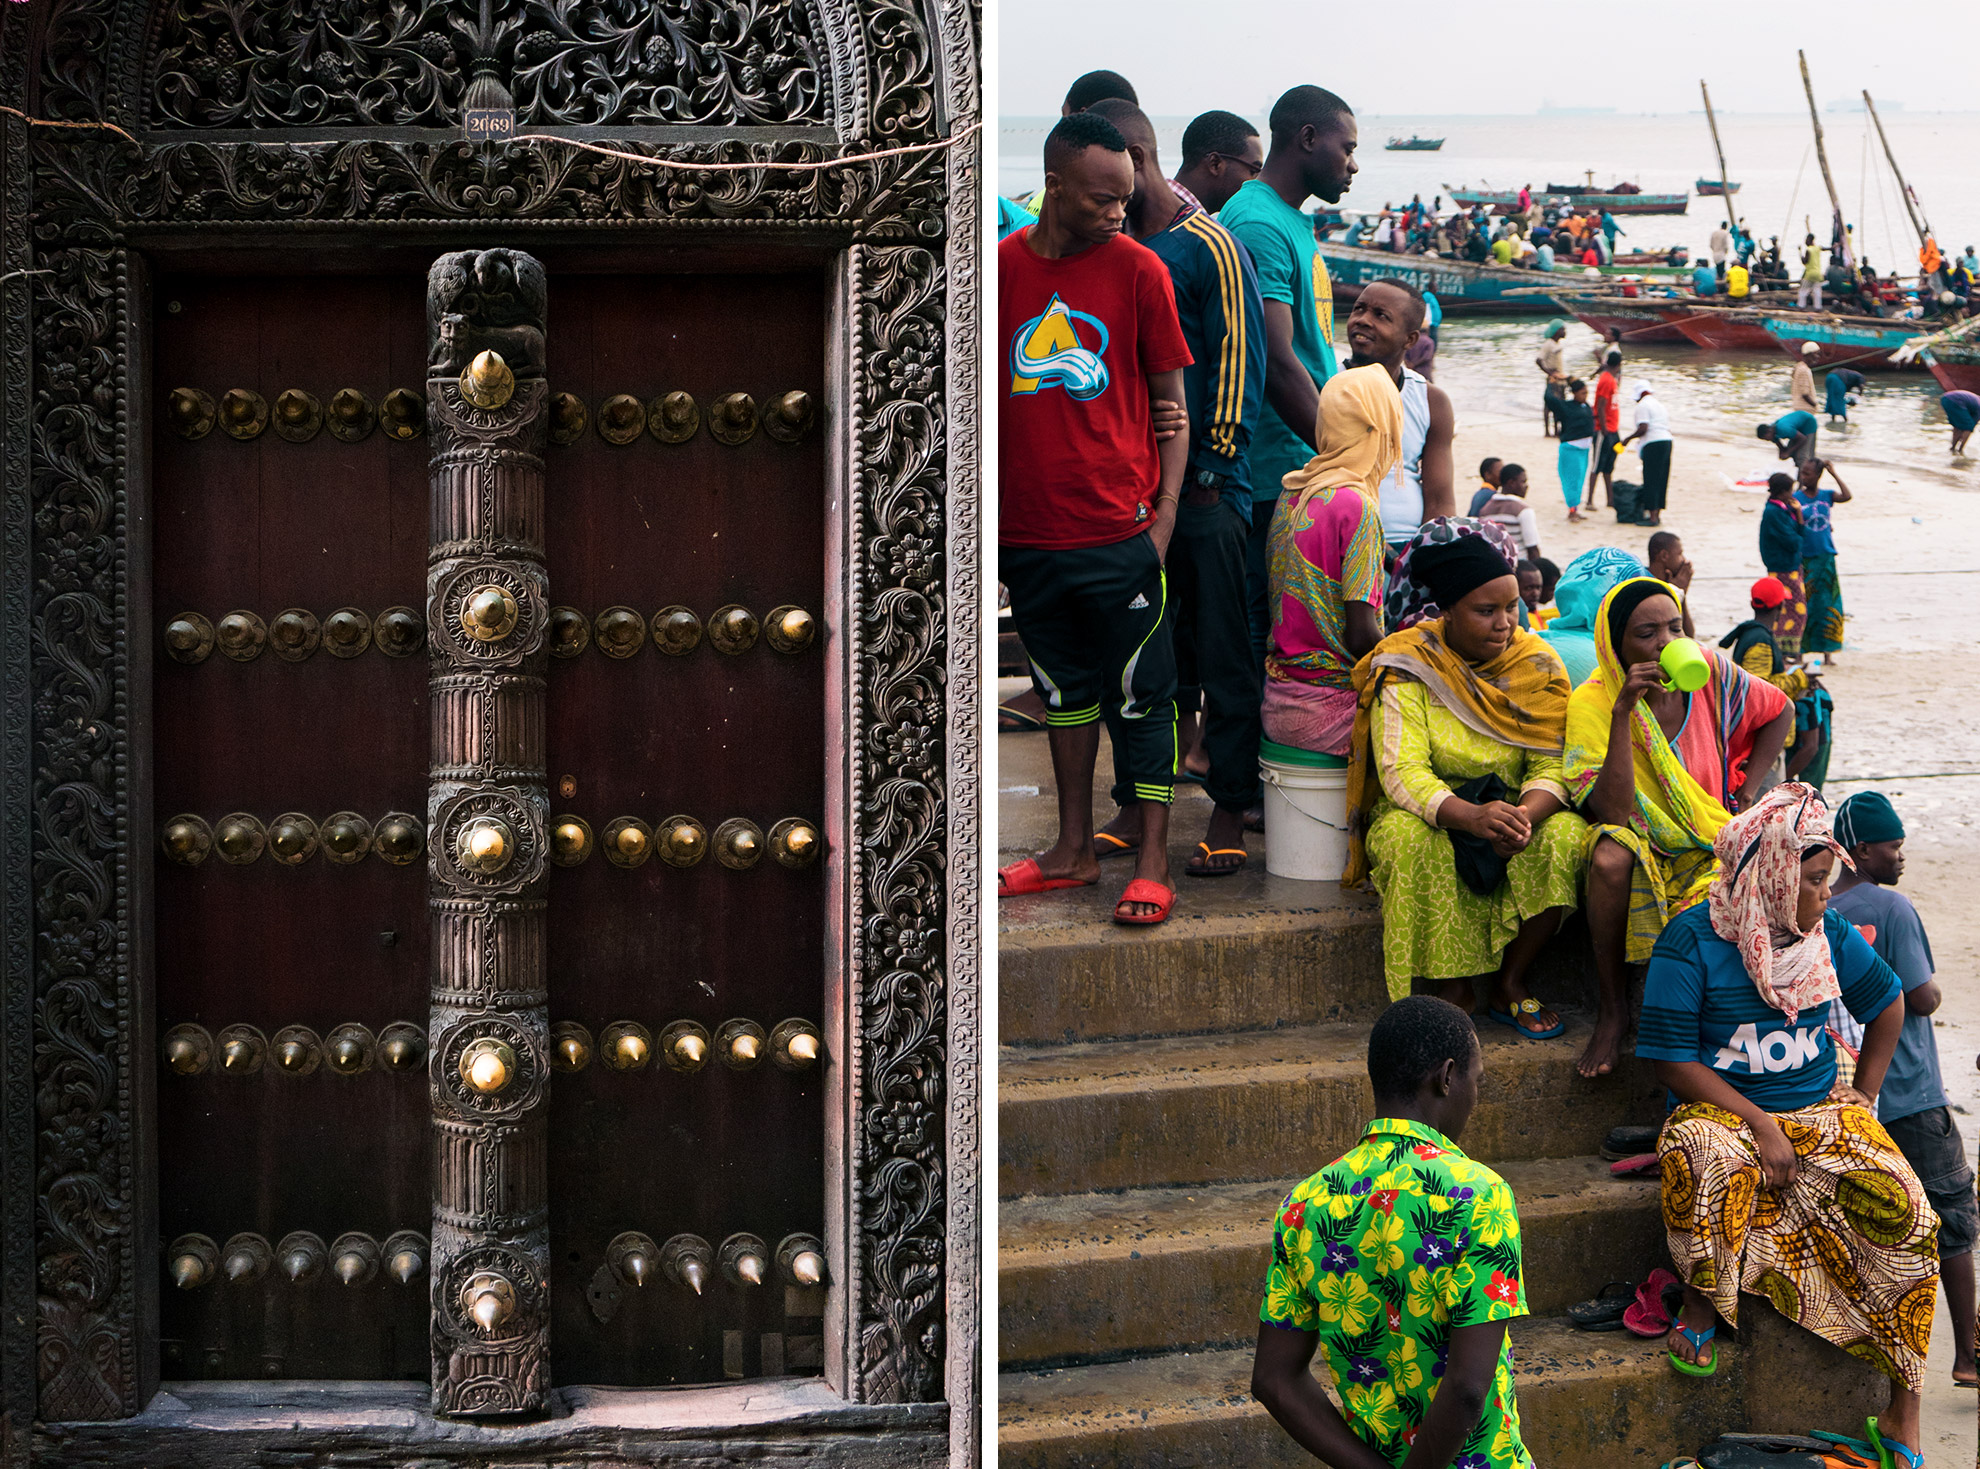 Split photo. Left, an intricate door. Right, people sitting on stairs outdoors.